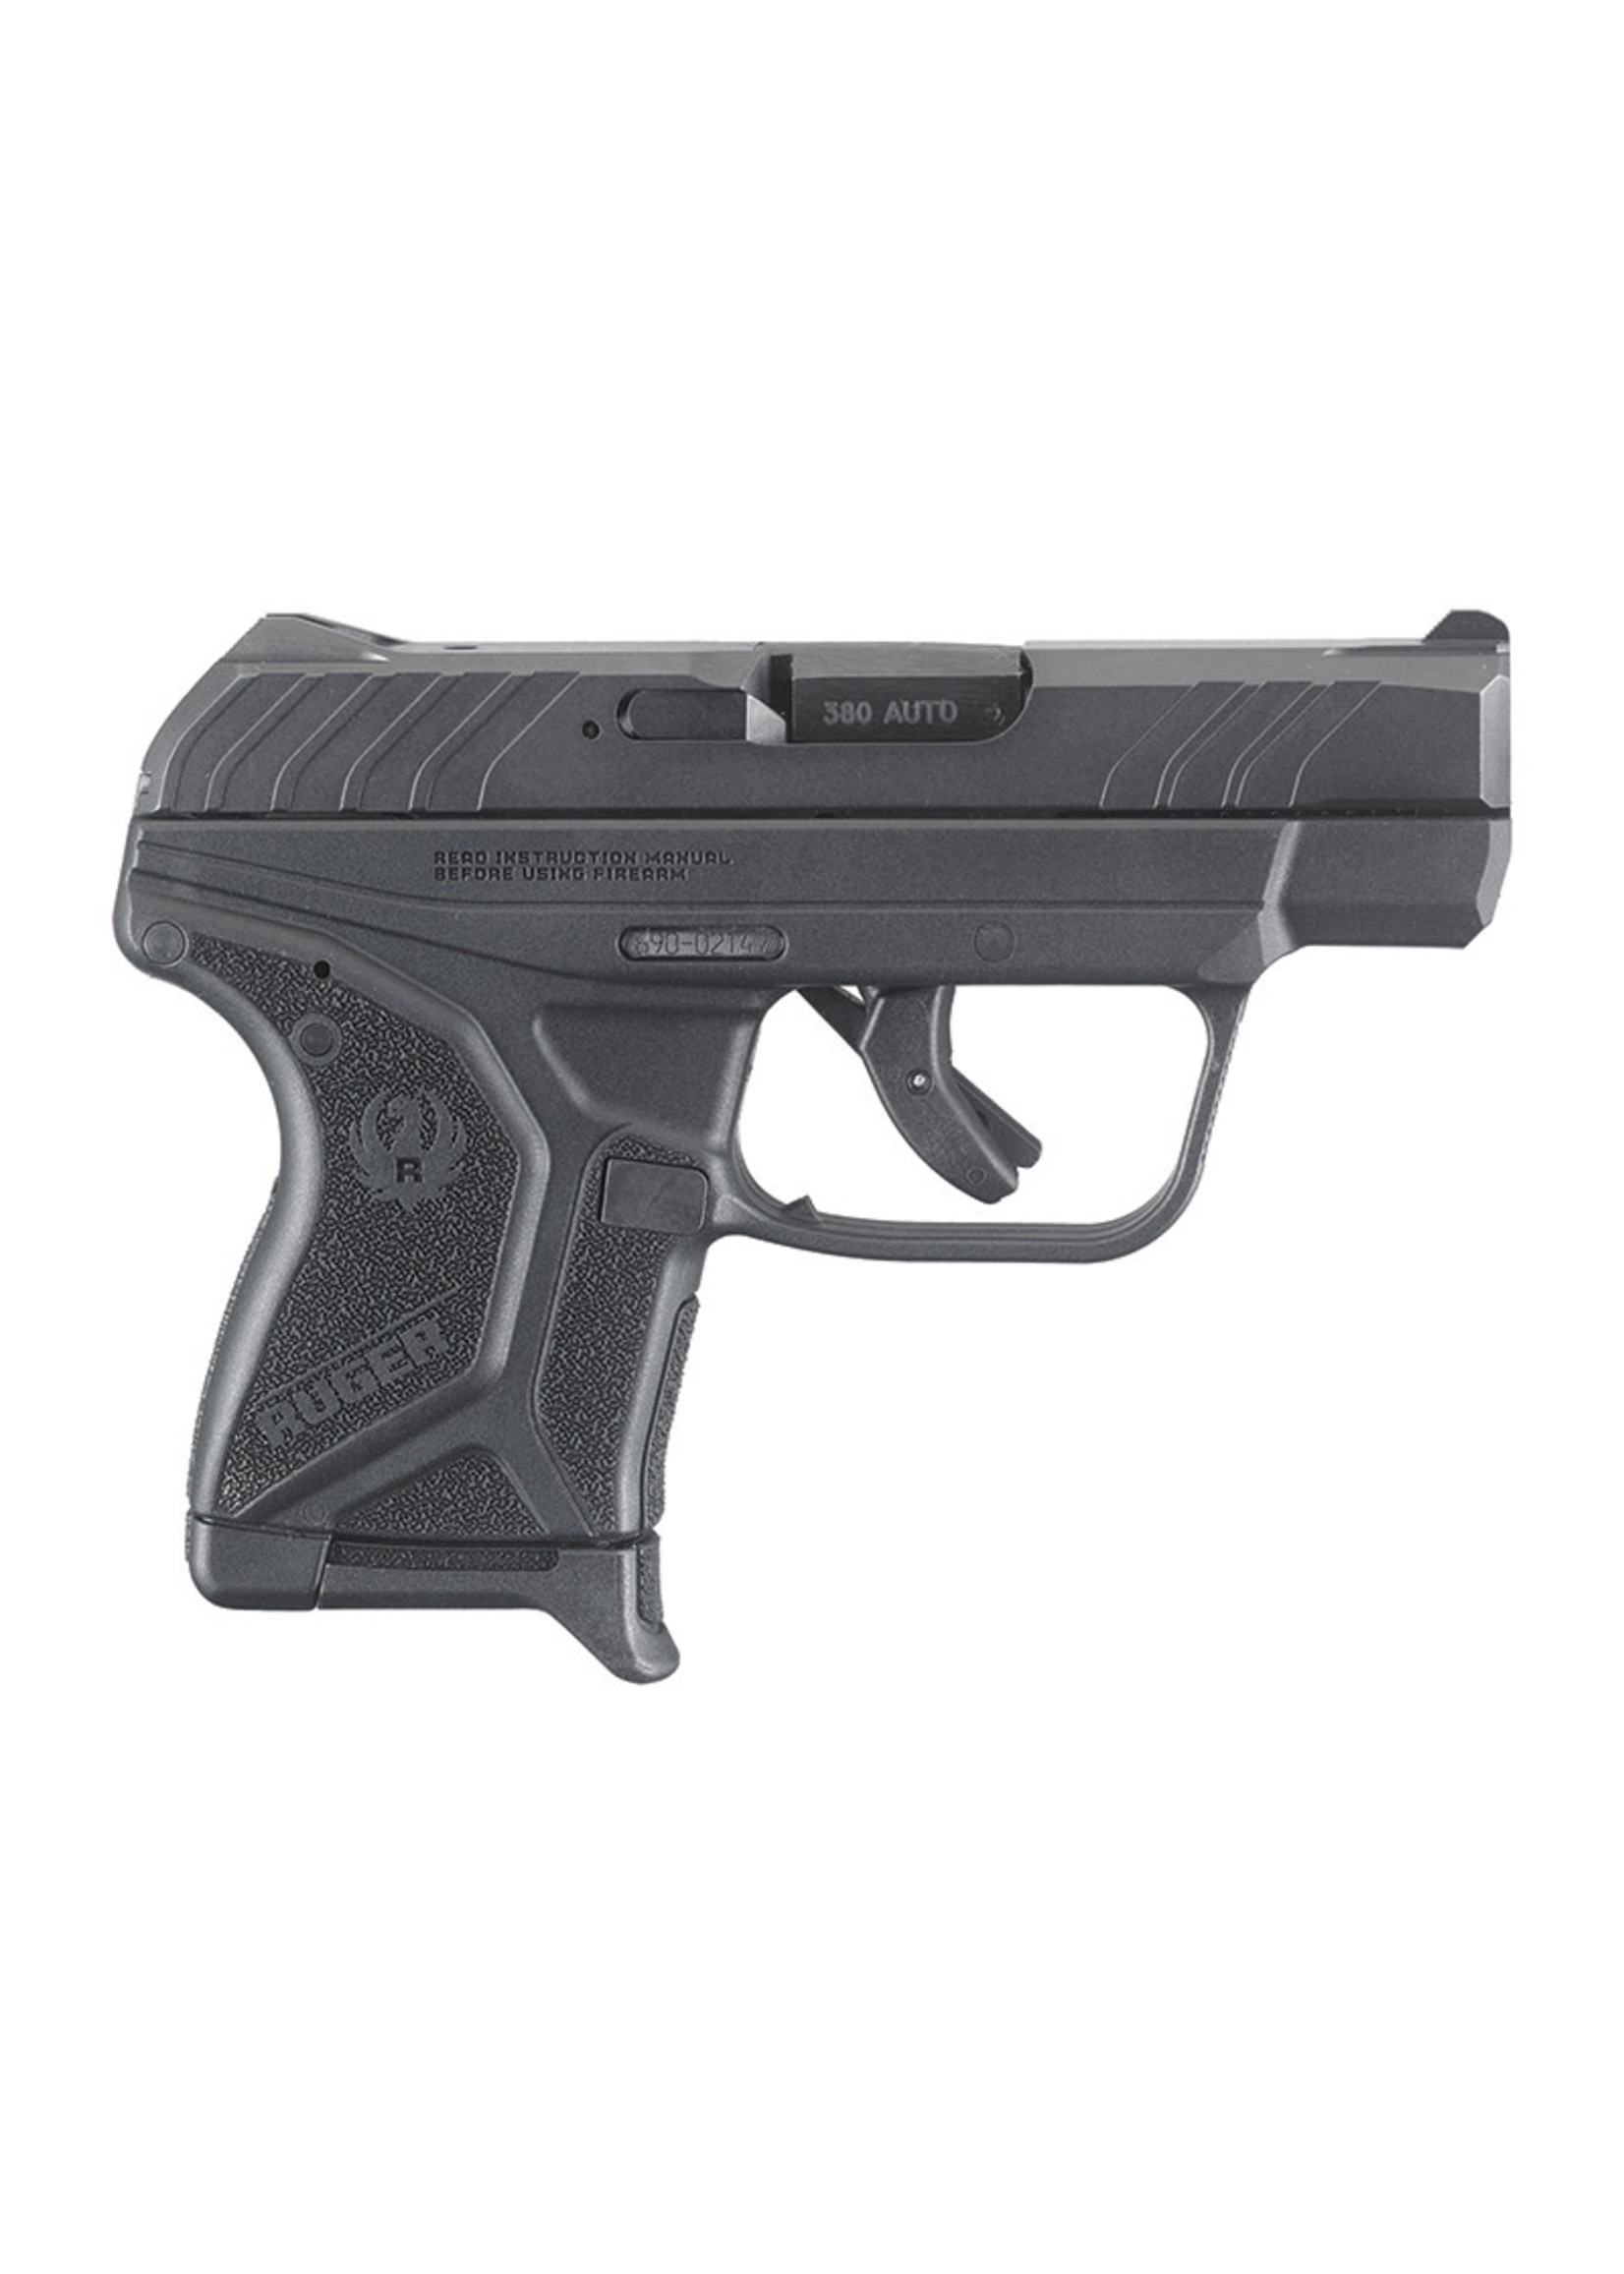 """Ruger Ruger - LCP II, 380 Auto, 2.75"""" Barrel, Fixed Sights, Blued, 6-round"""